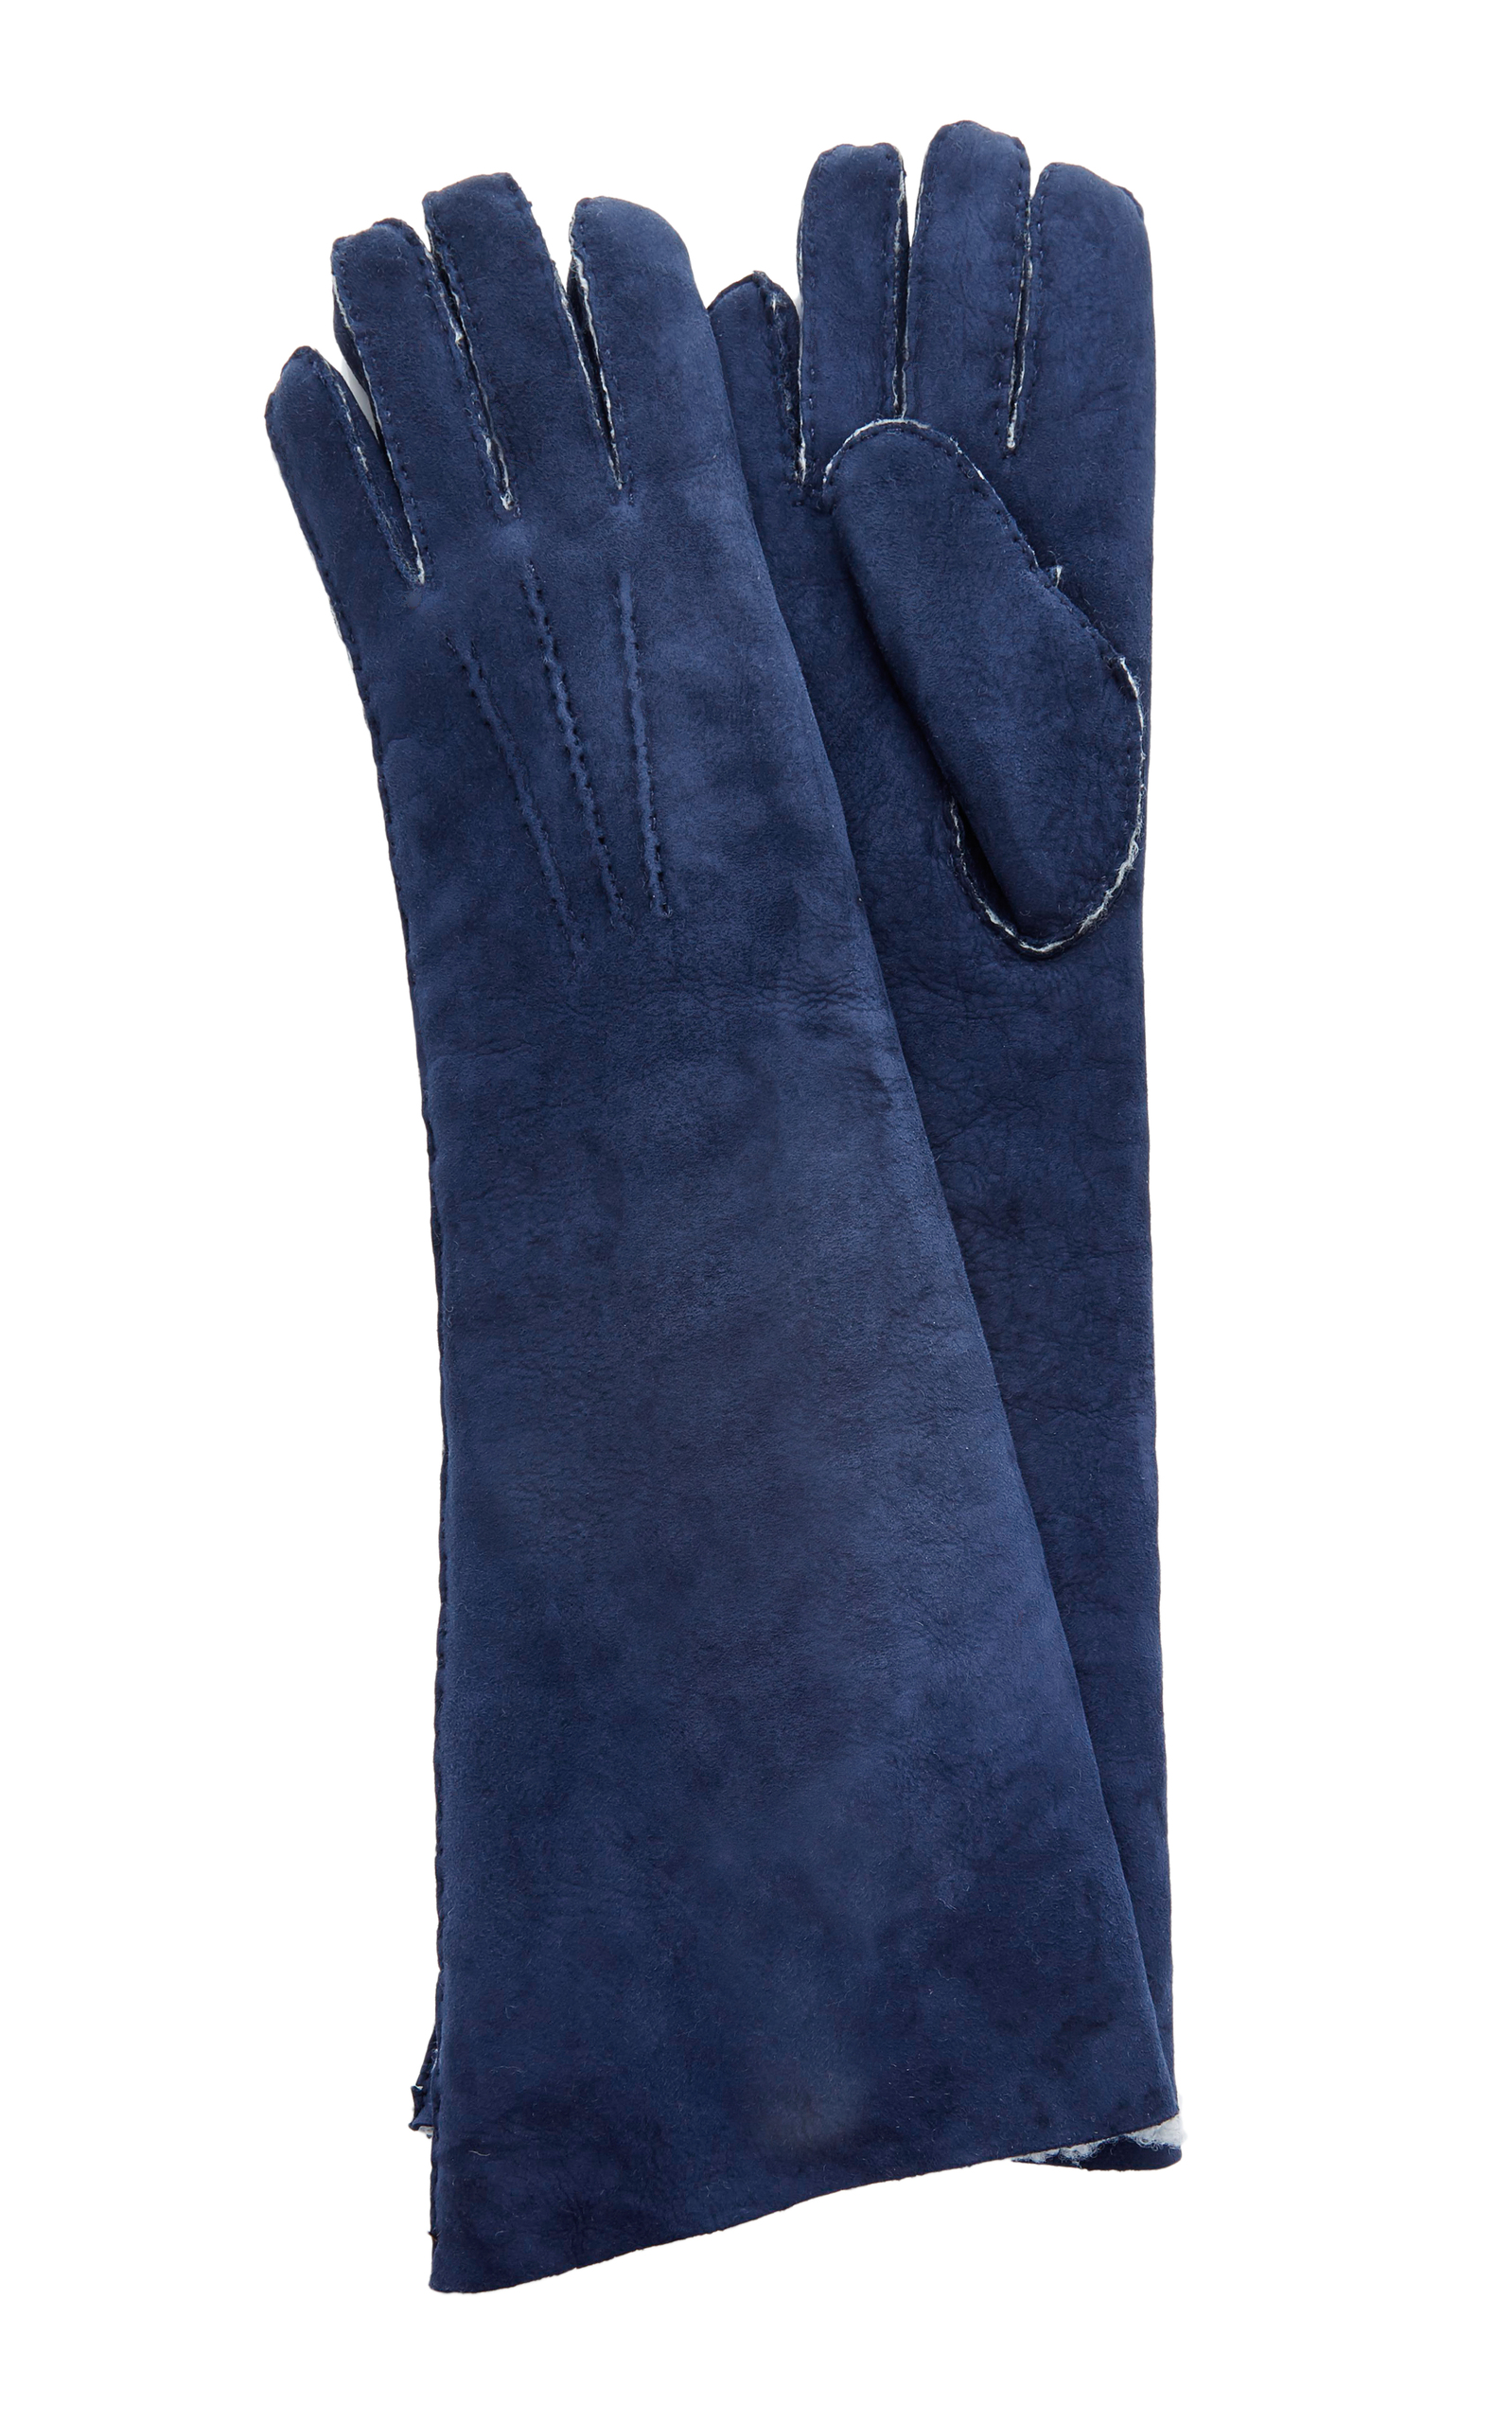 MAISON FABRE Suede And Shearling Long Gloves in Navy